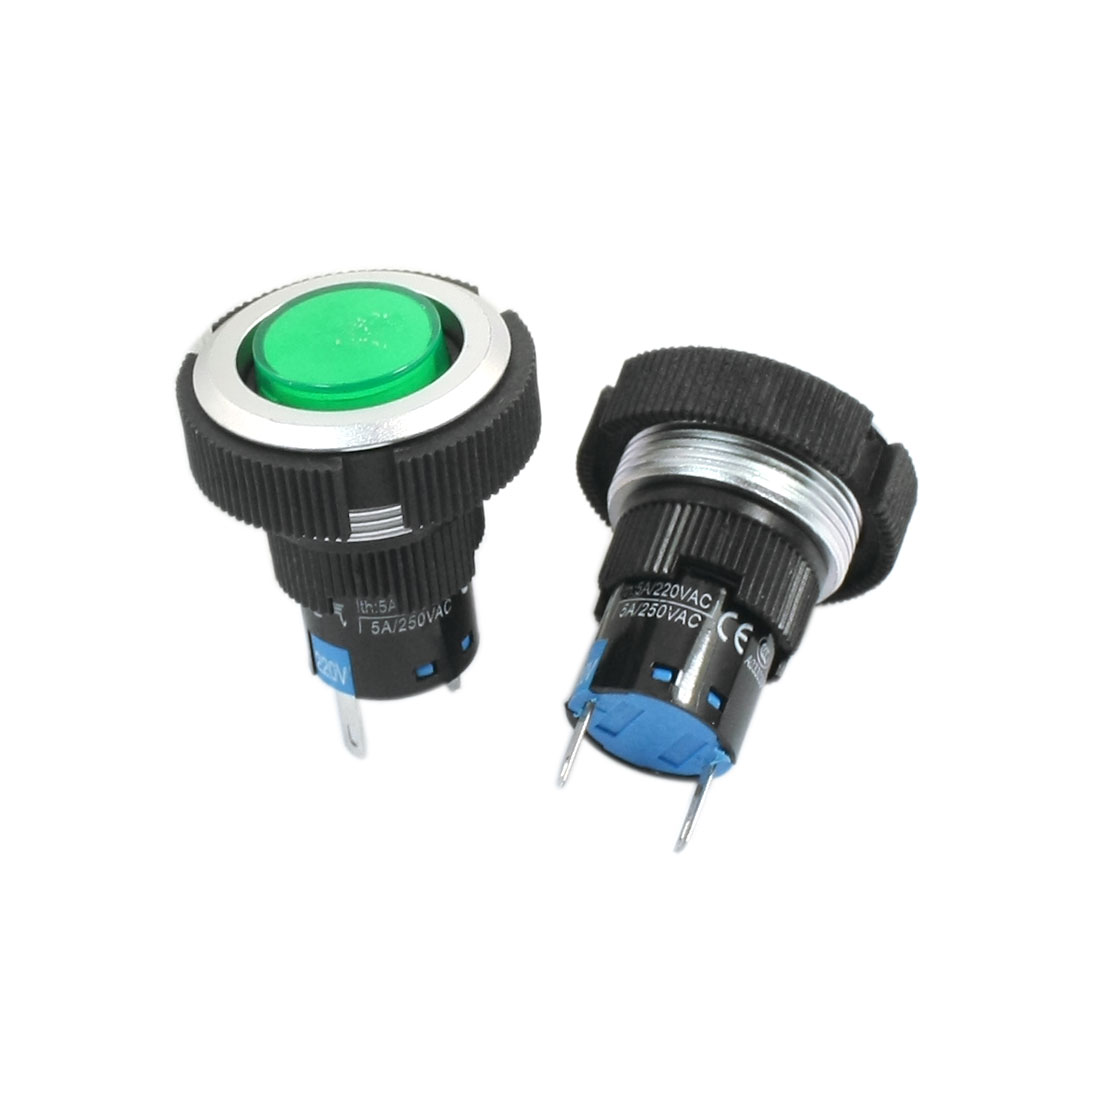 220V 22mm Dia Thread Panel Mounting 2 Terminals Soldering Plastic Signal Indicator Light Pilot Lamp Bulb Green 2Pcs